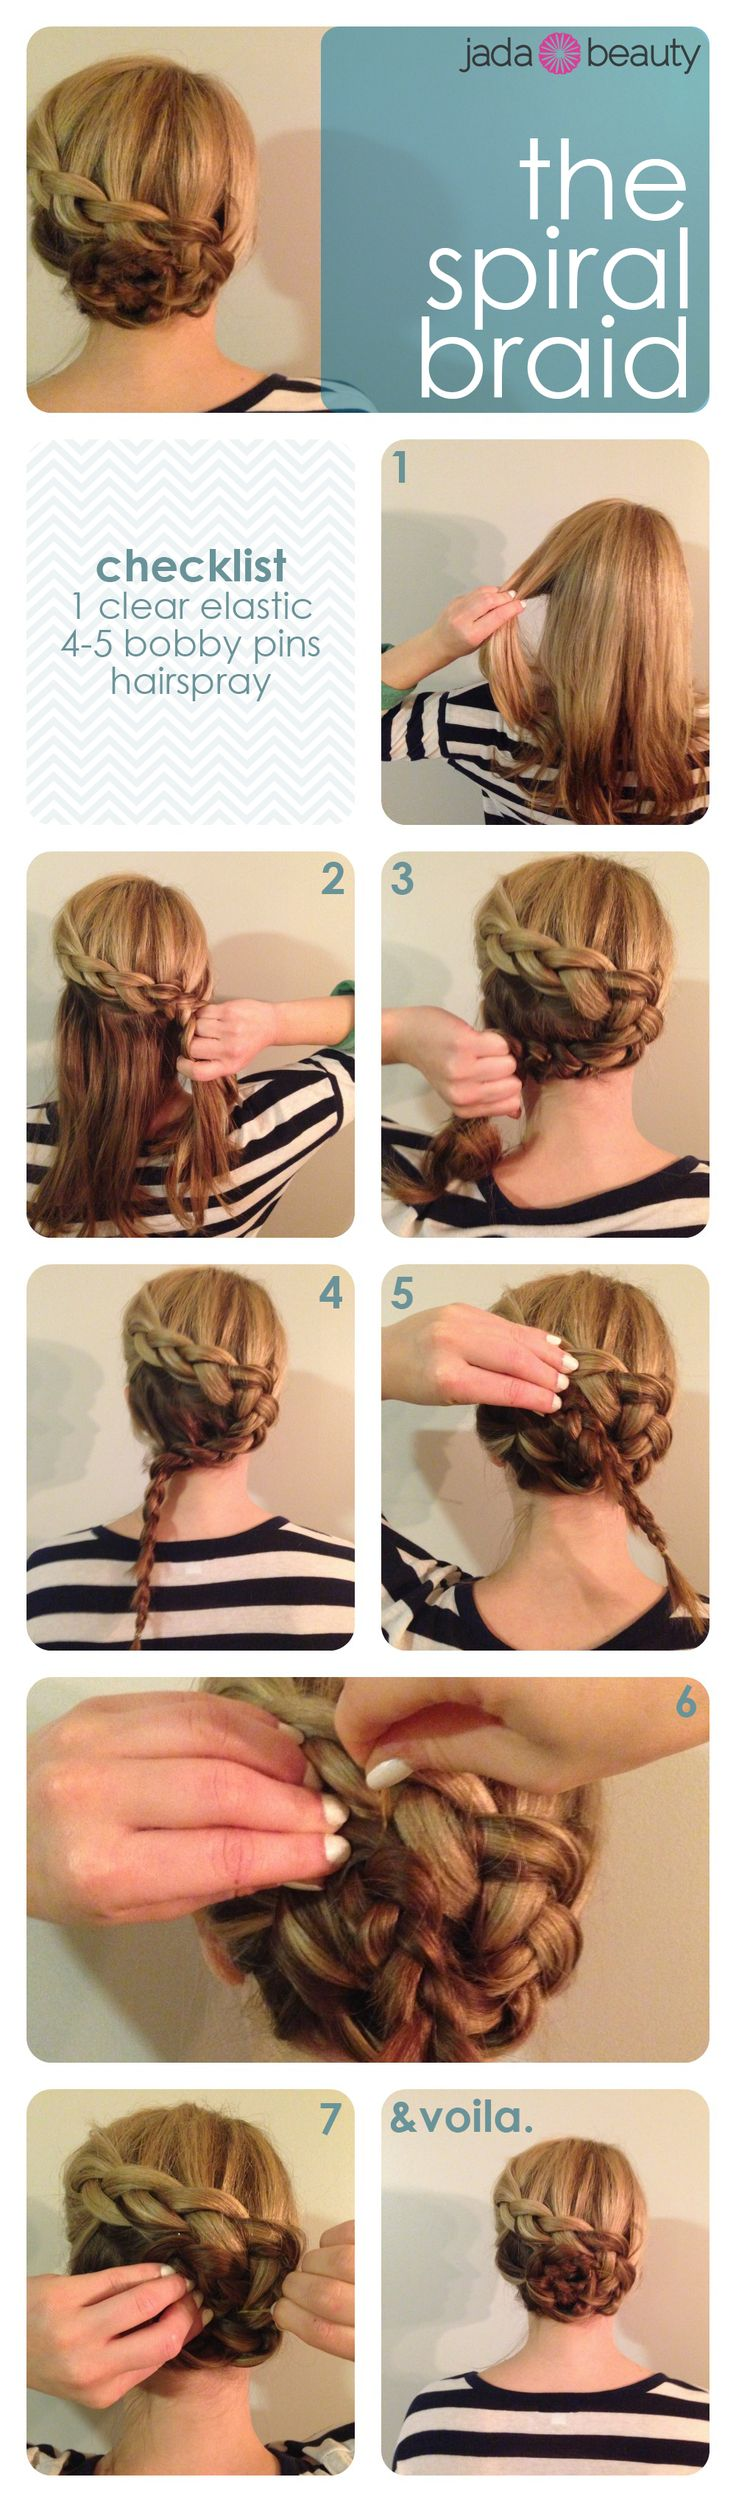 easy #hair #tutorial - the spiral braid! Pin now, try later.